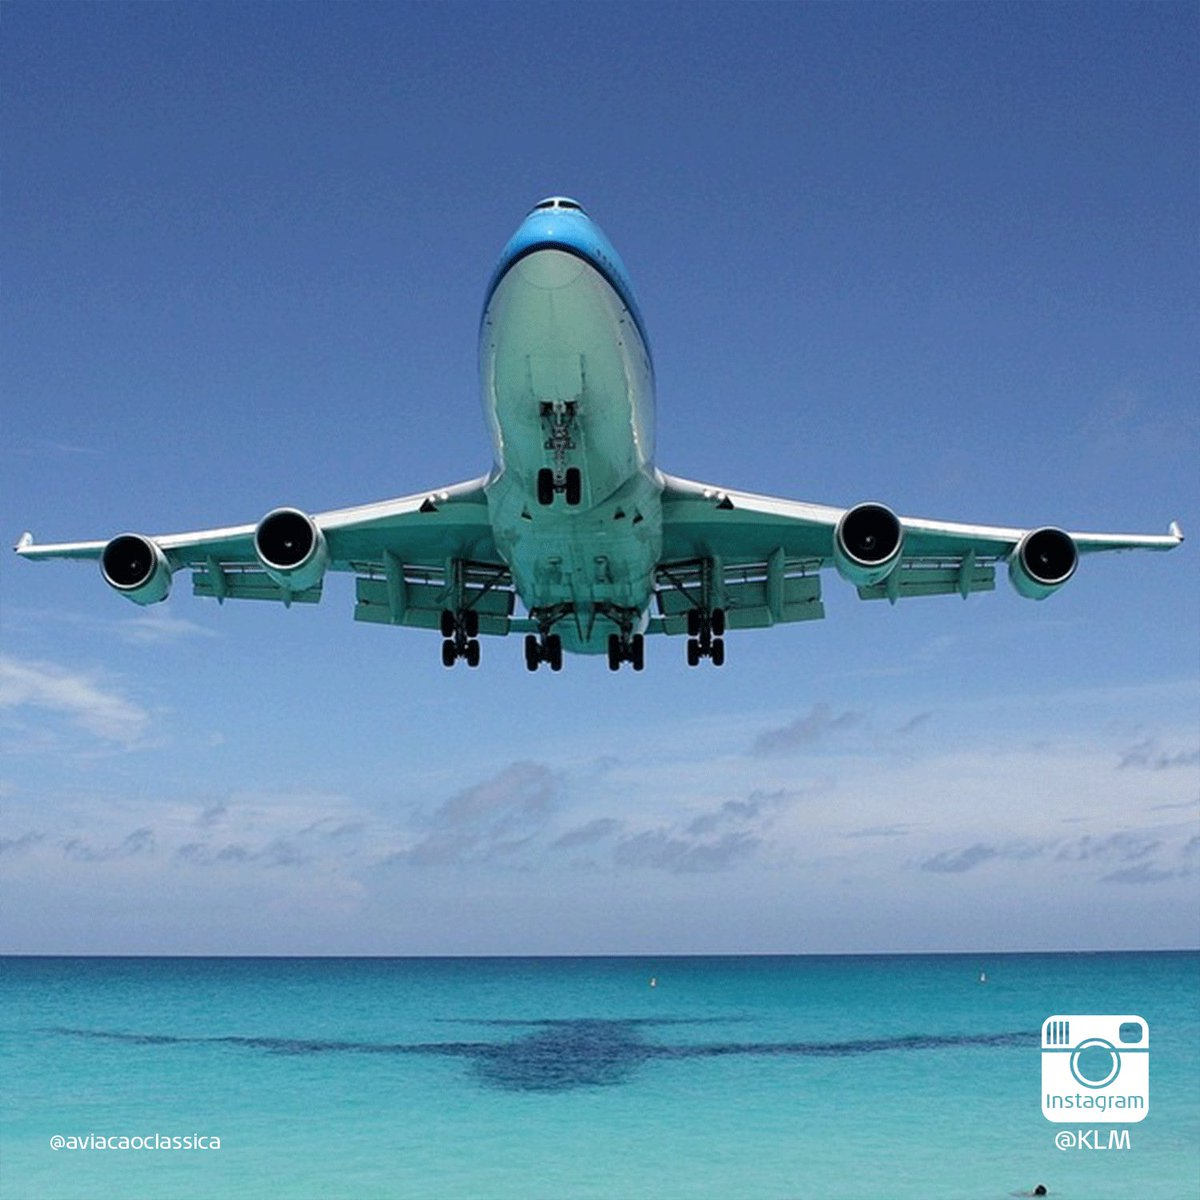 KLM Boeing 747 makes its final iconic landing over the beach on Sint Maarten